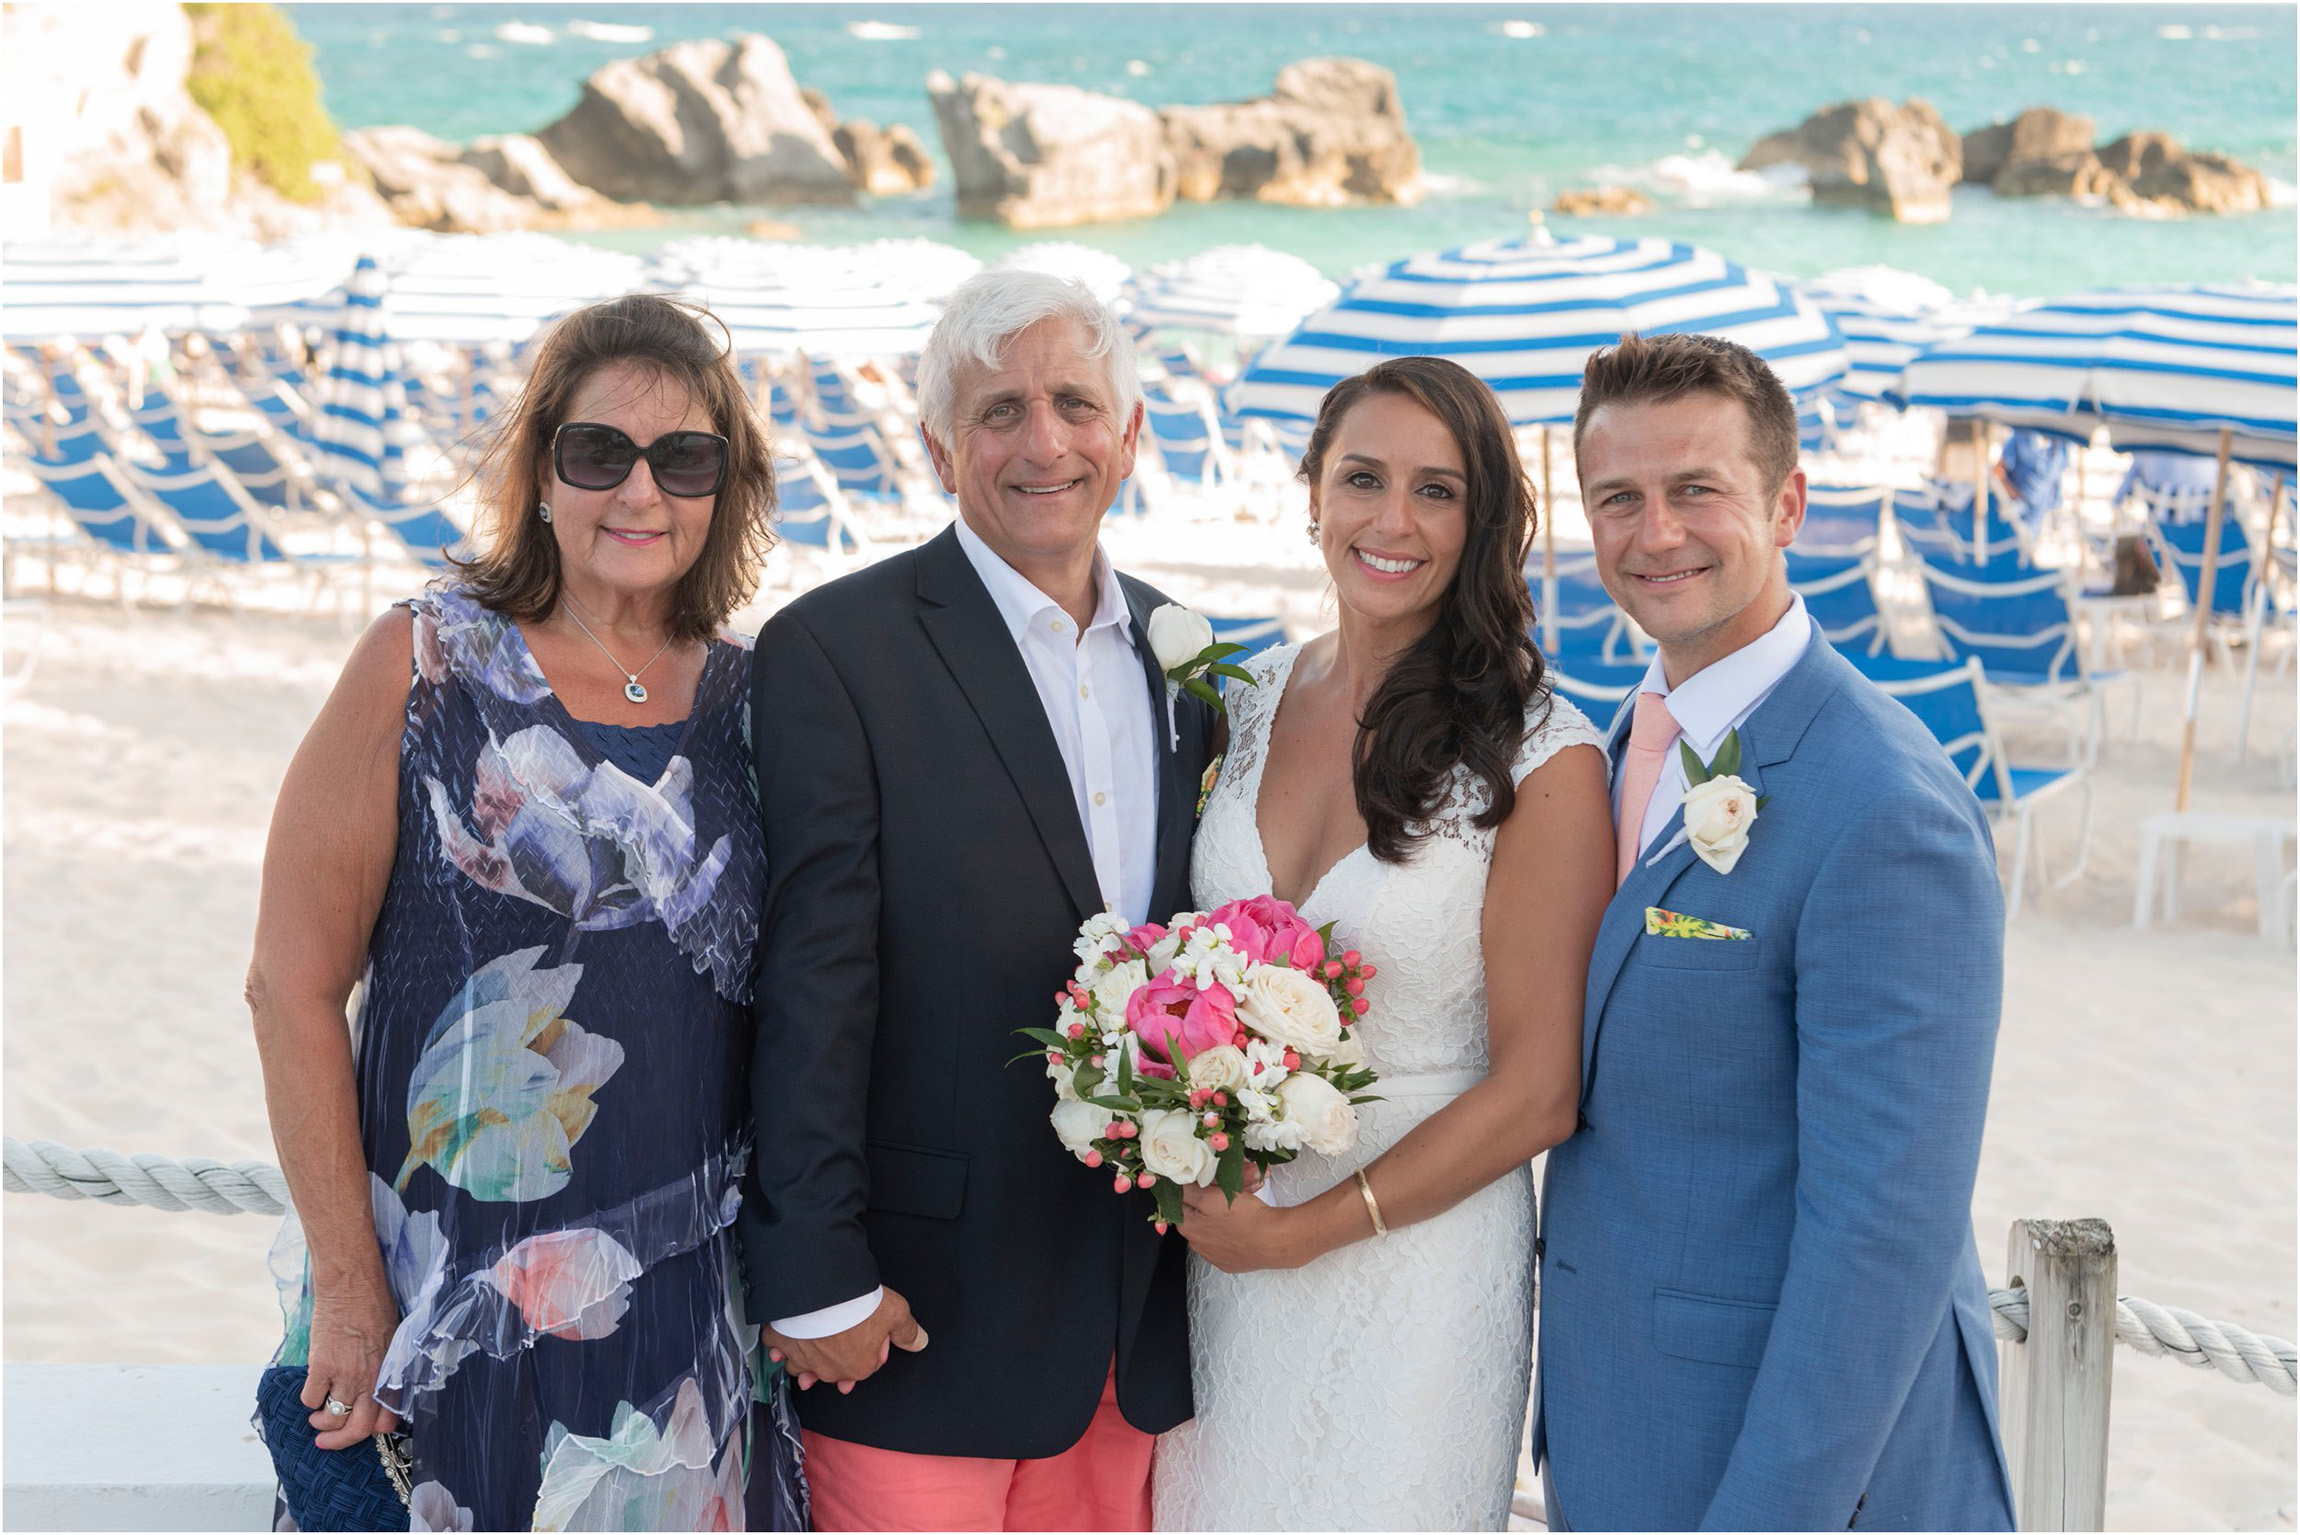 ©FianderFoto_Bermuda Wedding Photographer_Fairmont Southampton_Wedding_Anna_Thomas_070.jpg